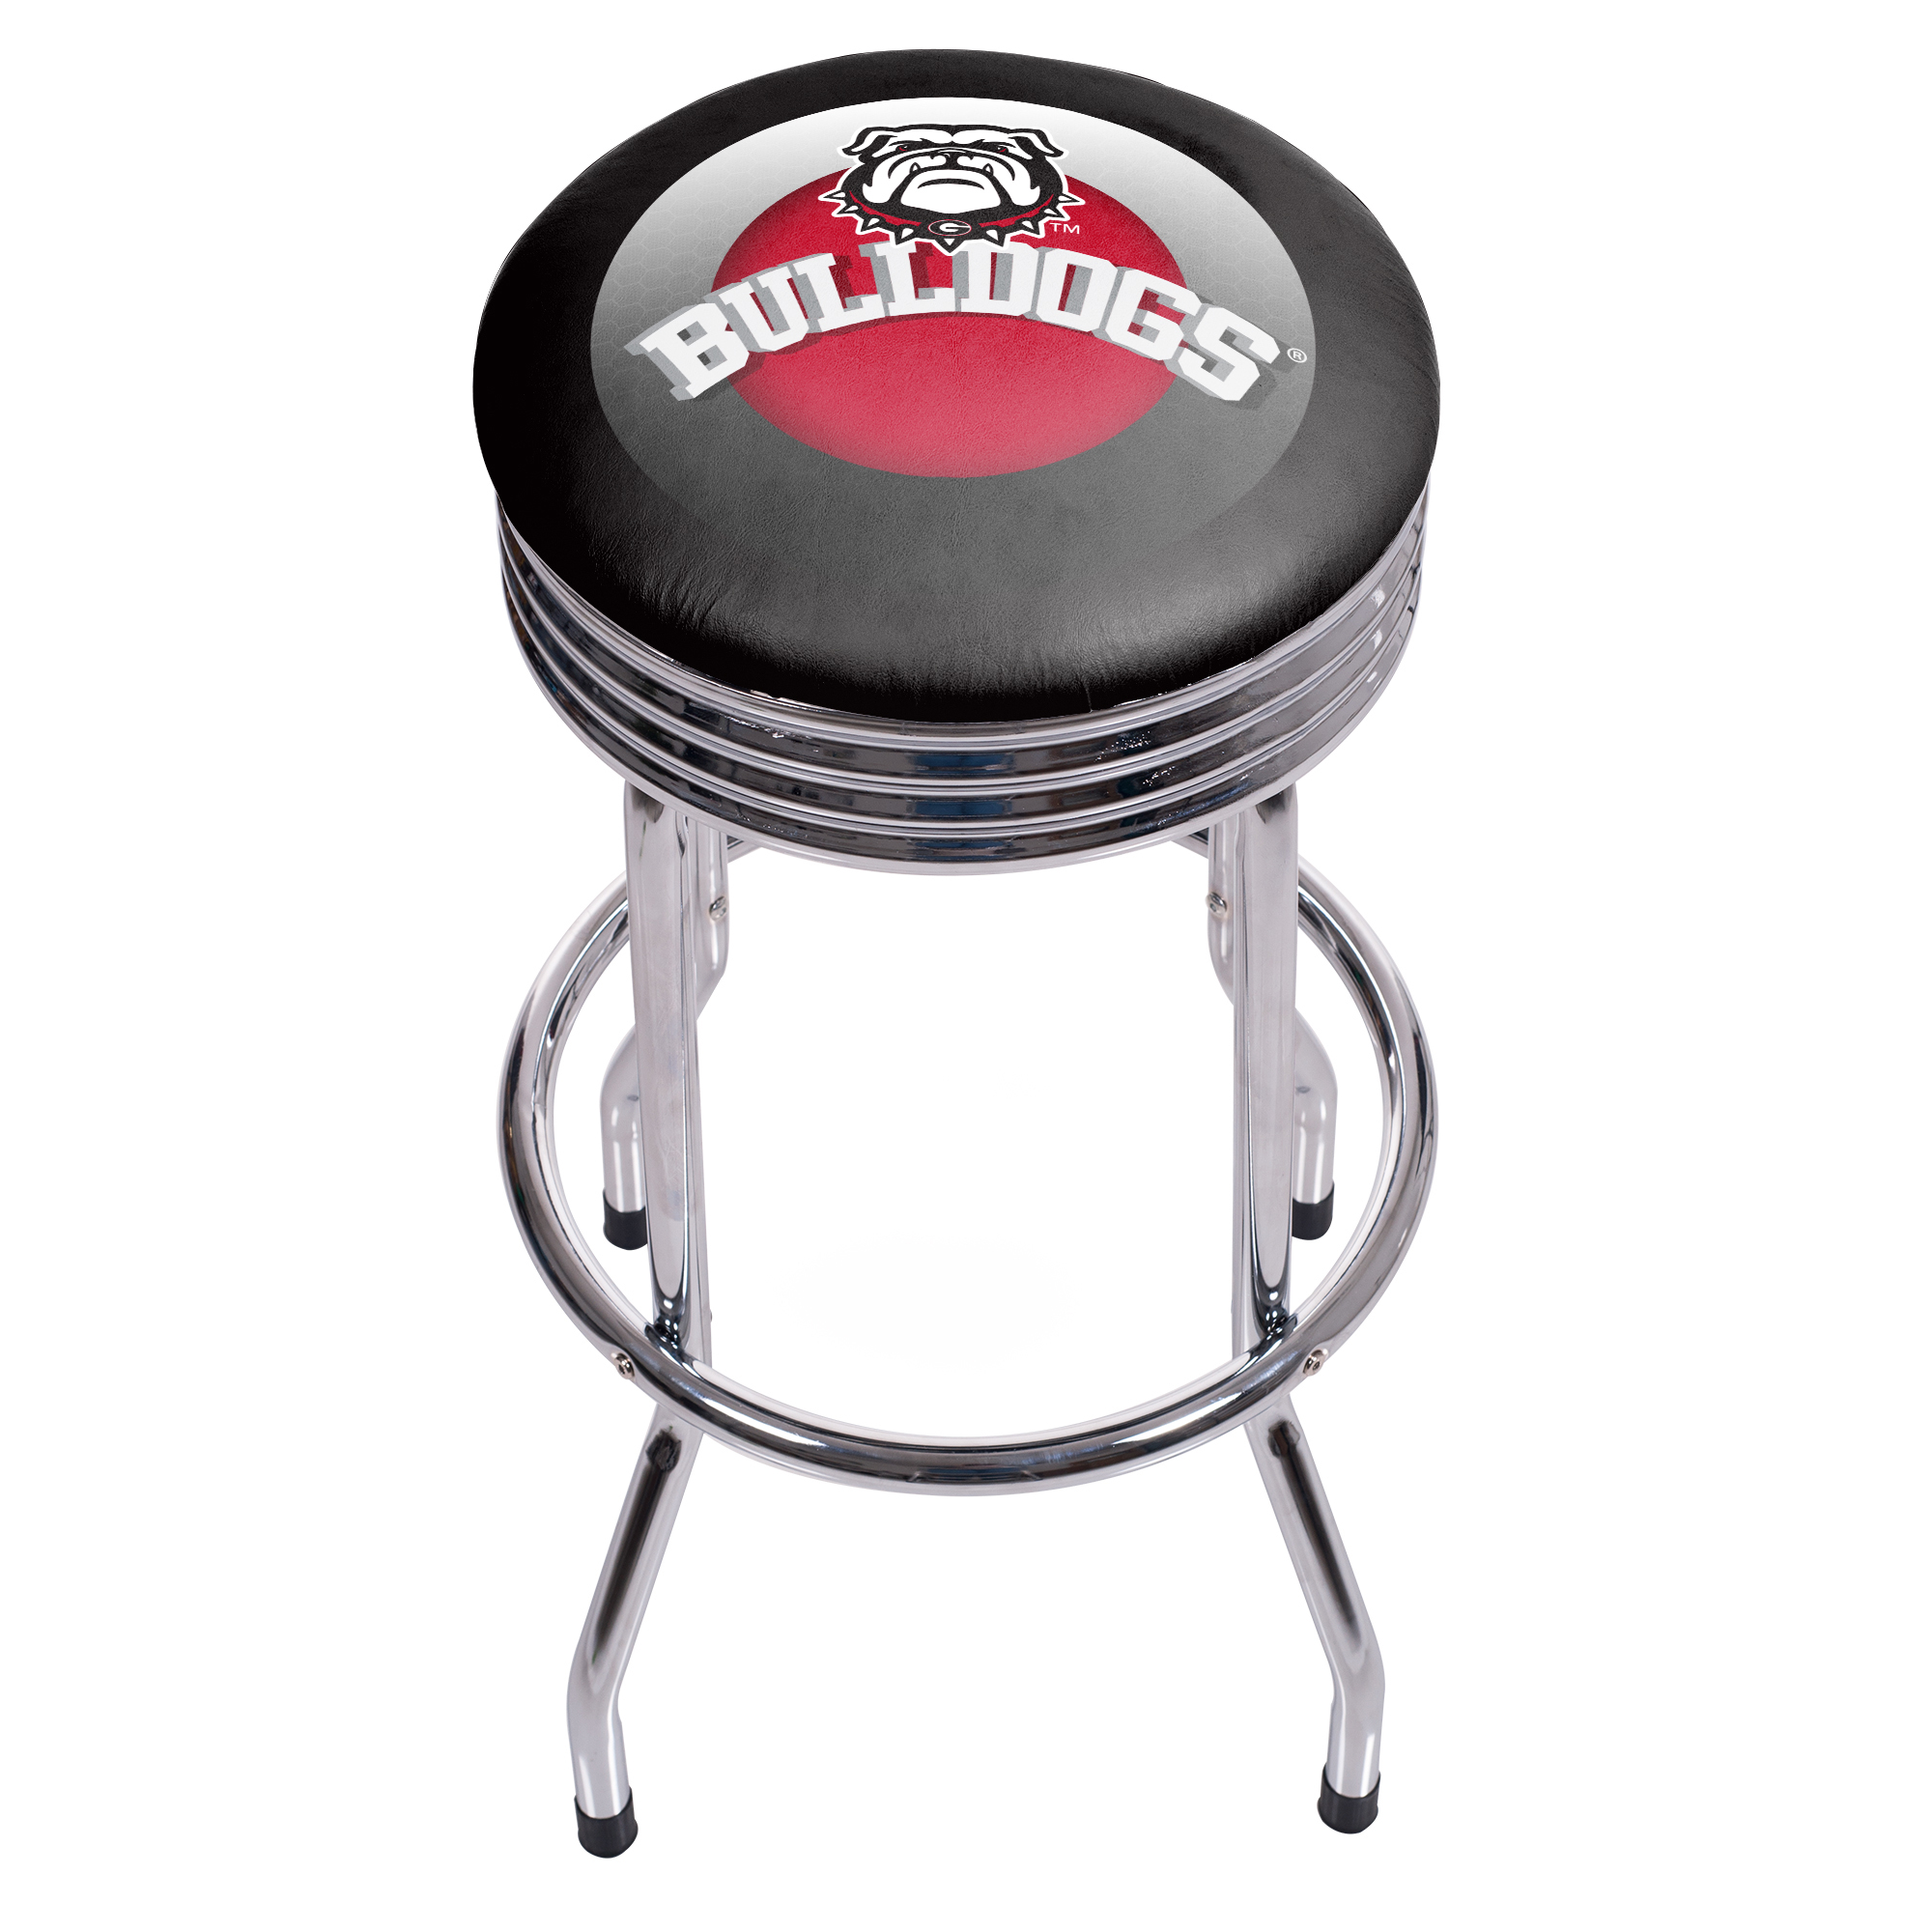 University of Georgia Chrome Ribbed Bar Stool - Honeycomb 080V009247674000